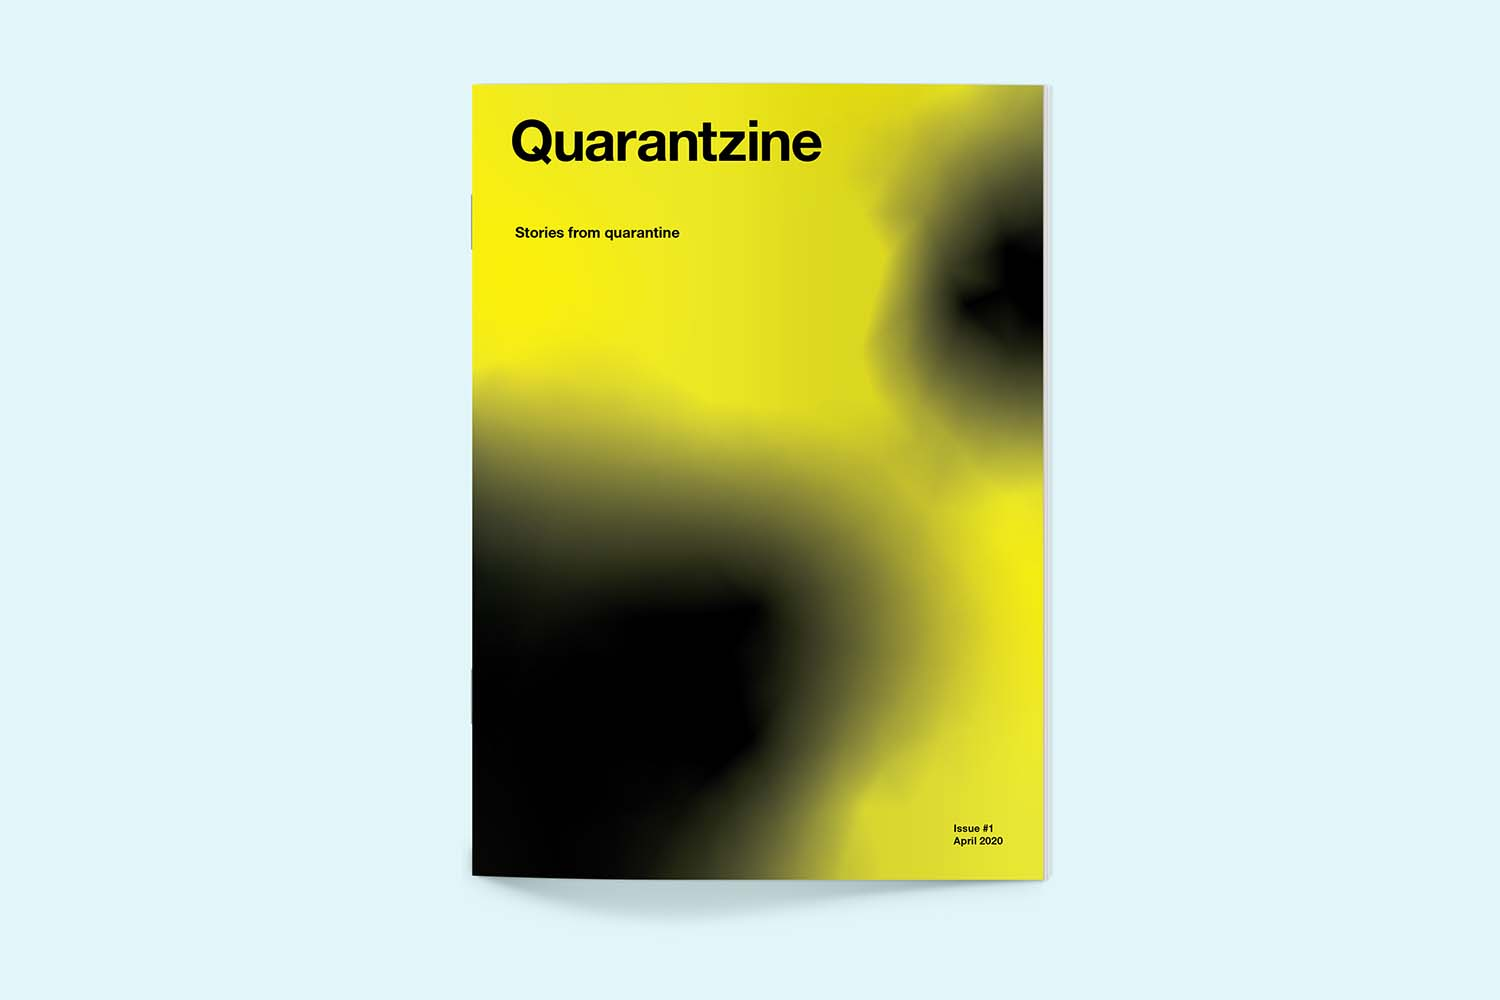 Quarantzine Issue #1